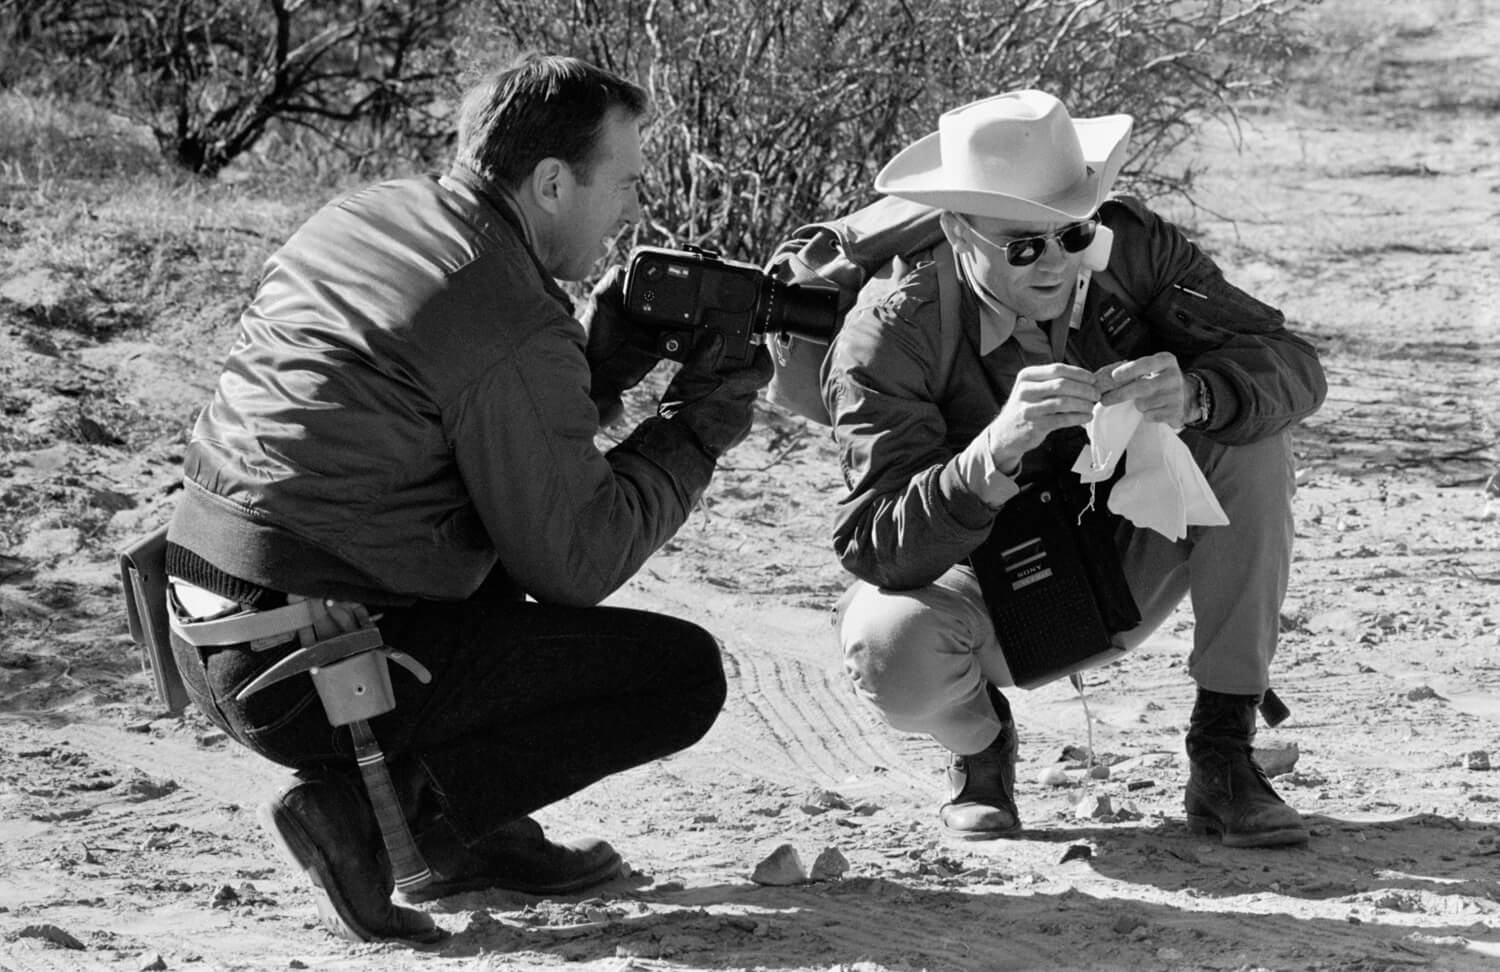 Back-up Commander Jim Lovell (left) looking on and holding a Hasselblad, Back-up Lunar Module Pilot Fred Haise (right) examines a sample during the Sierra Blanca trip (NASA: AP11-S69-25199)